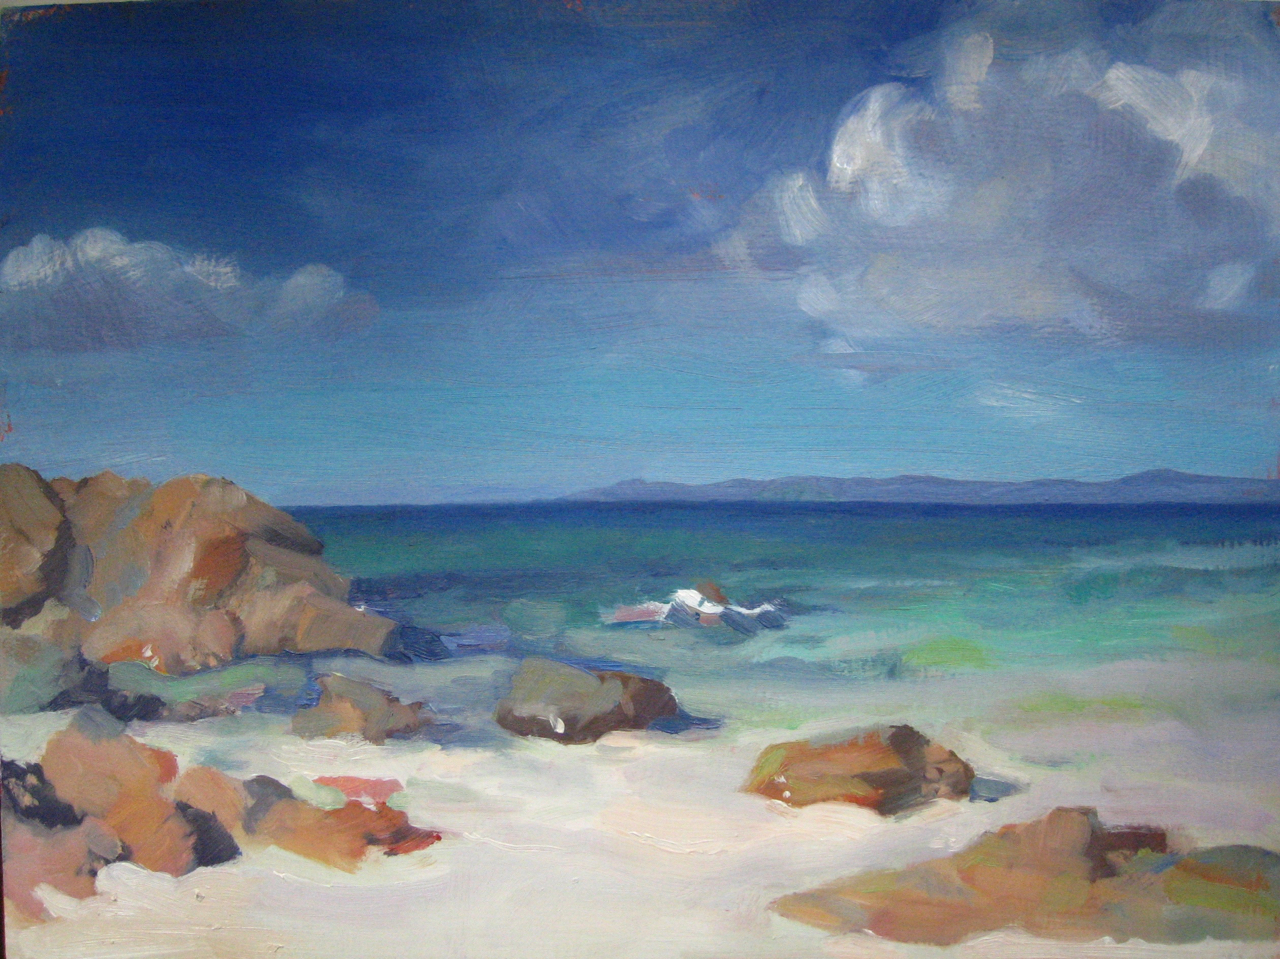 'Iona looking towards Sky' - oil on board 23x30cm